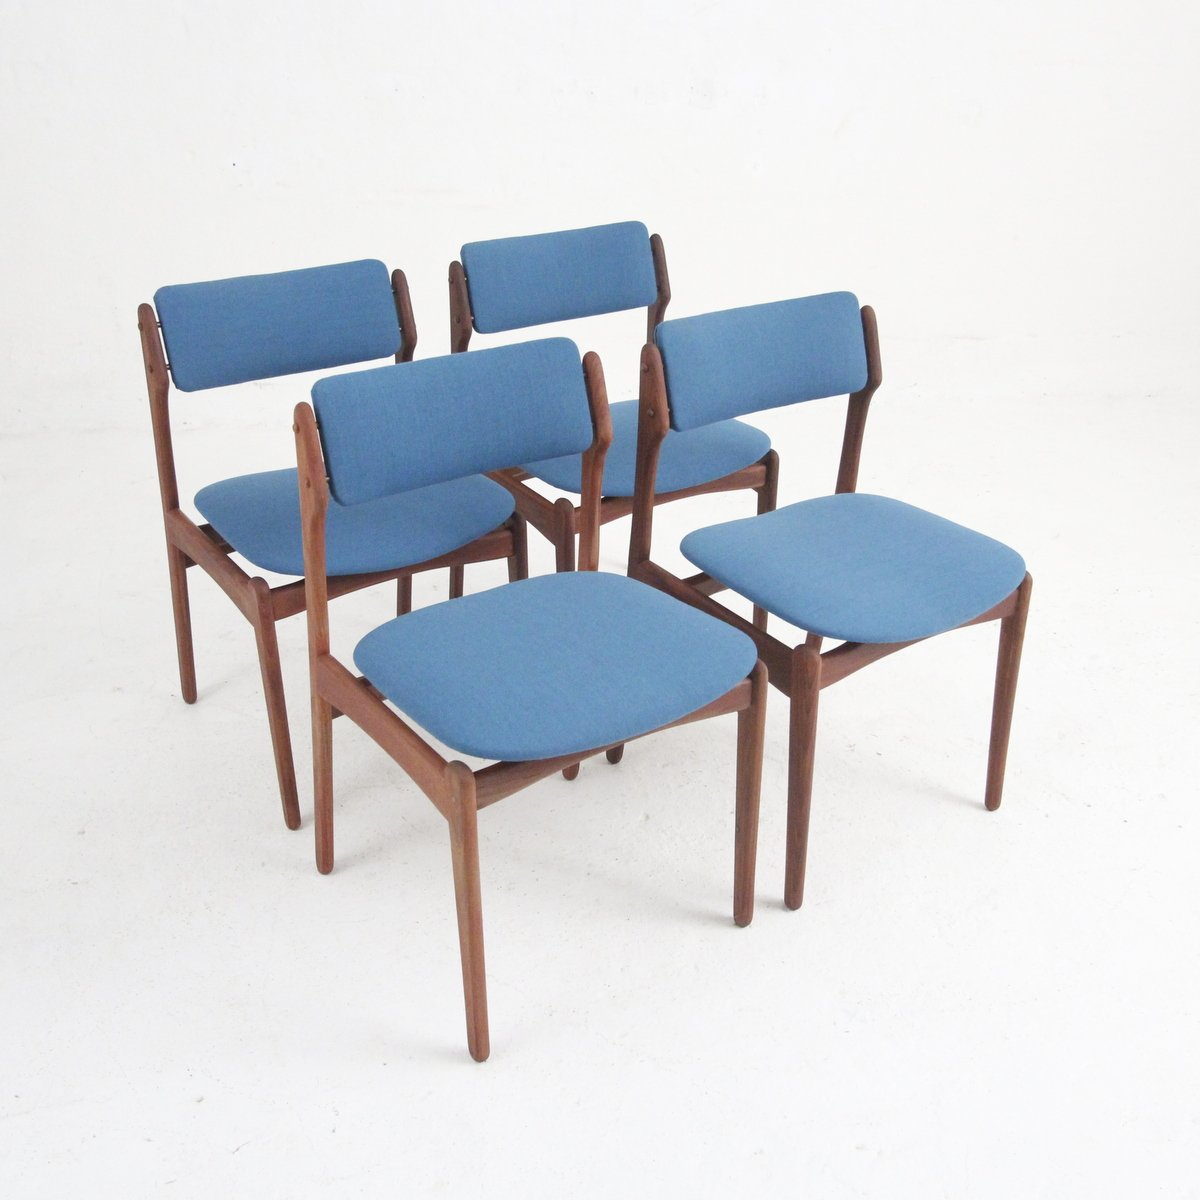 Danish Modern Dining Chair: Vintage Danish Modern Dining Chairs In Rosewood, Set Of 4